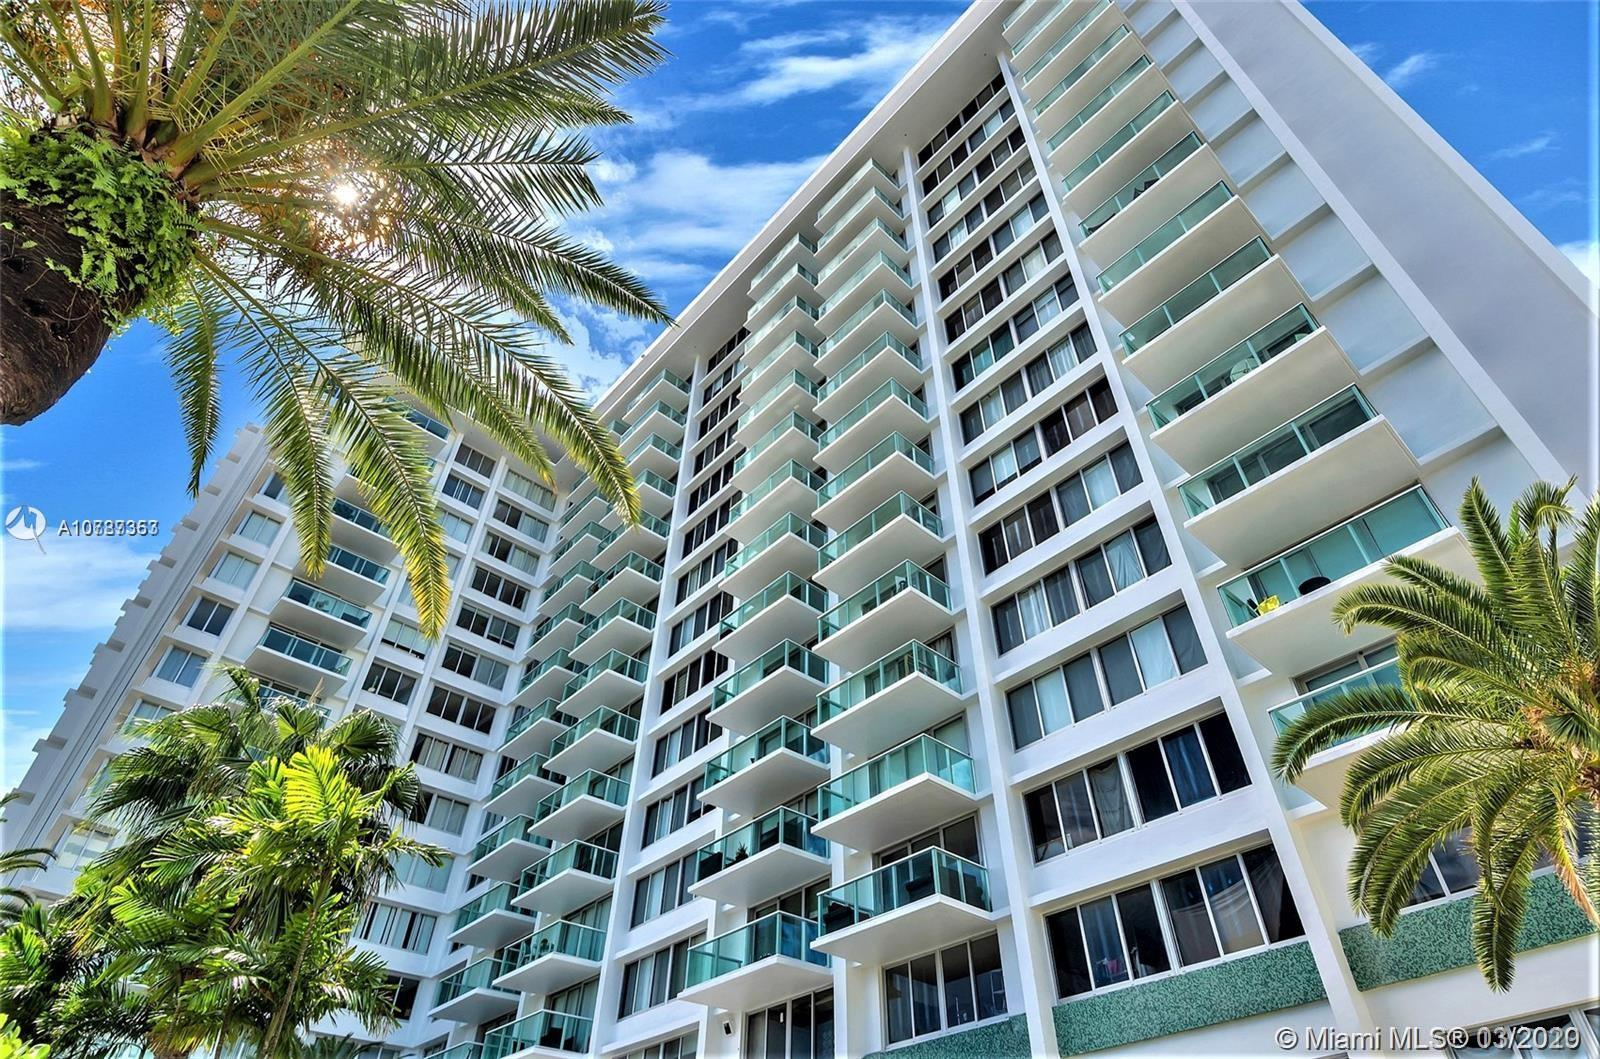 Mirador South #923 - 1000 West Ave #923, Miami Beach, FL 33139